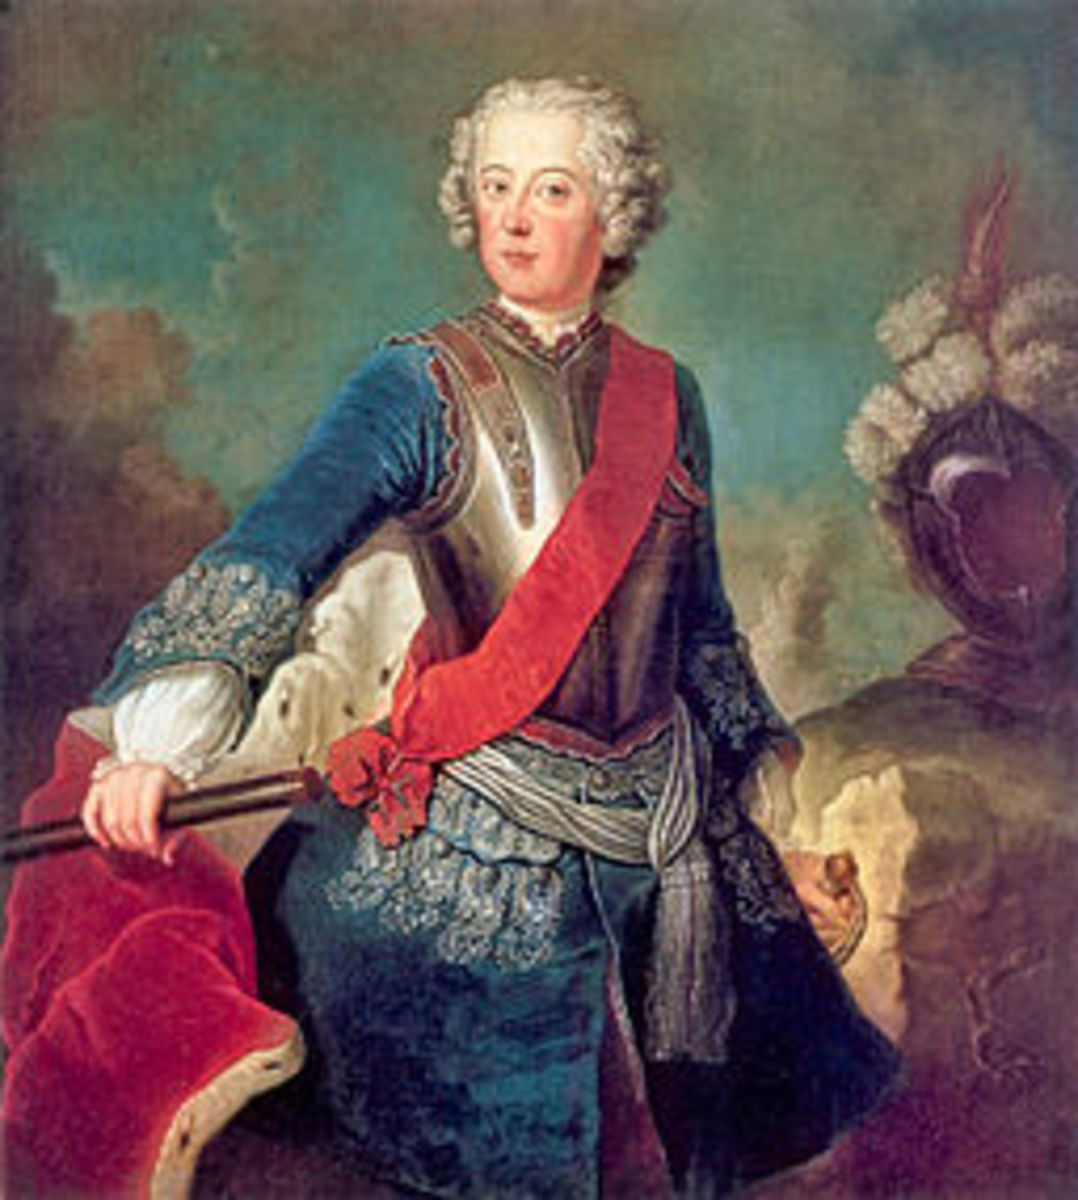 frederick ii of prussia essay on the forms of government Frederick the great: king of prussia frederick ii: alexis eschleman works cited frederick ii: essay on forms of government internet modern history sourcebook.